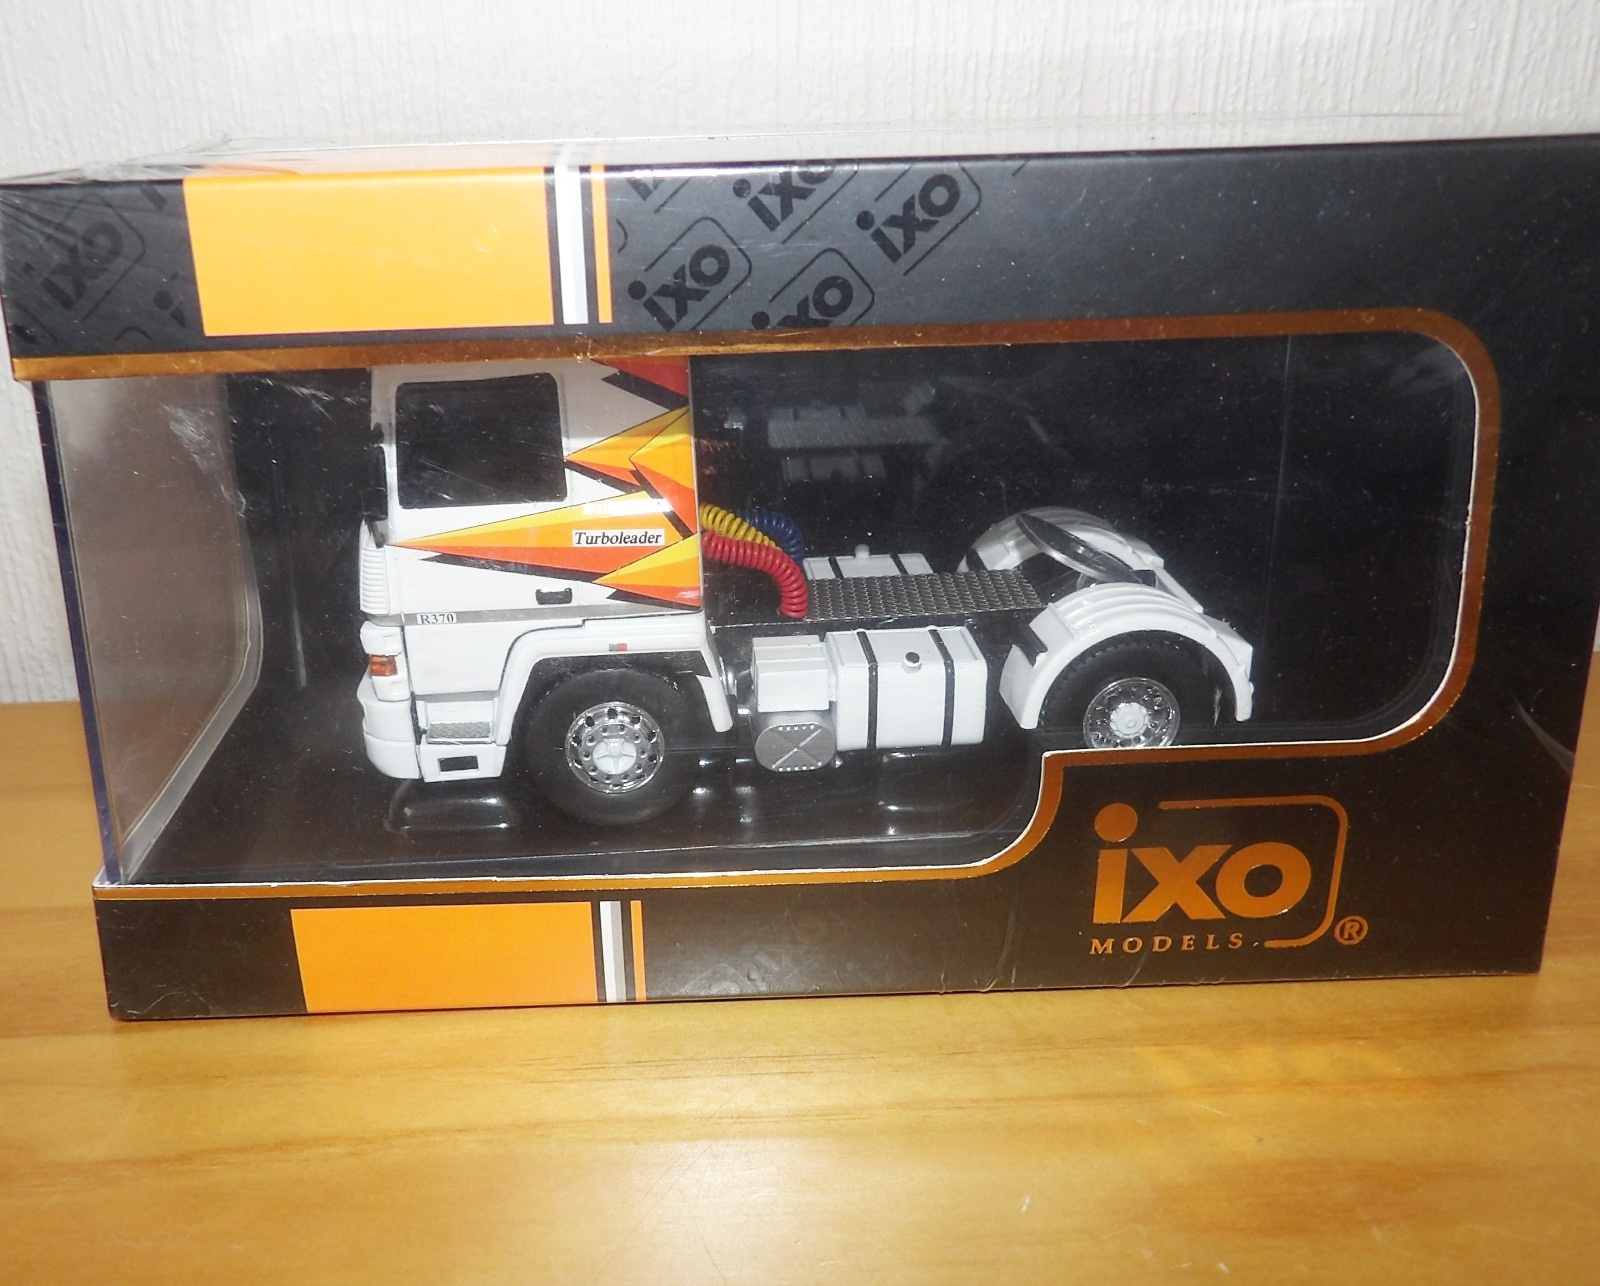 Lot 713 - 1.43 Scale IXO Renault R370 Turboleader 1987 Tractor Unit. P&P Group 1 (£14+VAT for the first lot